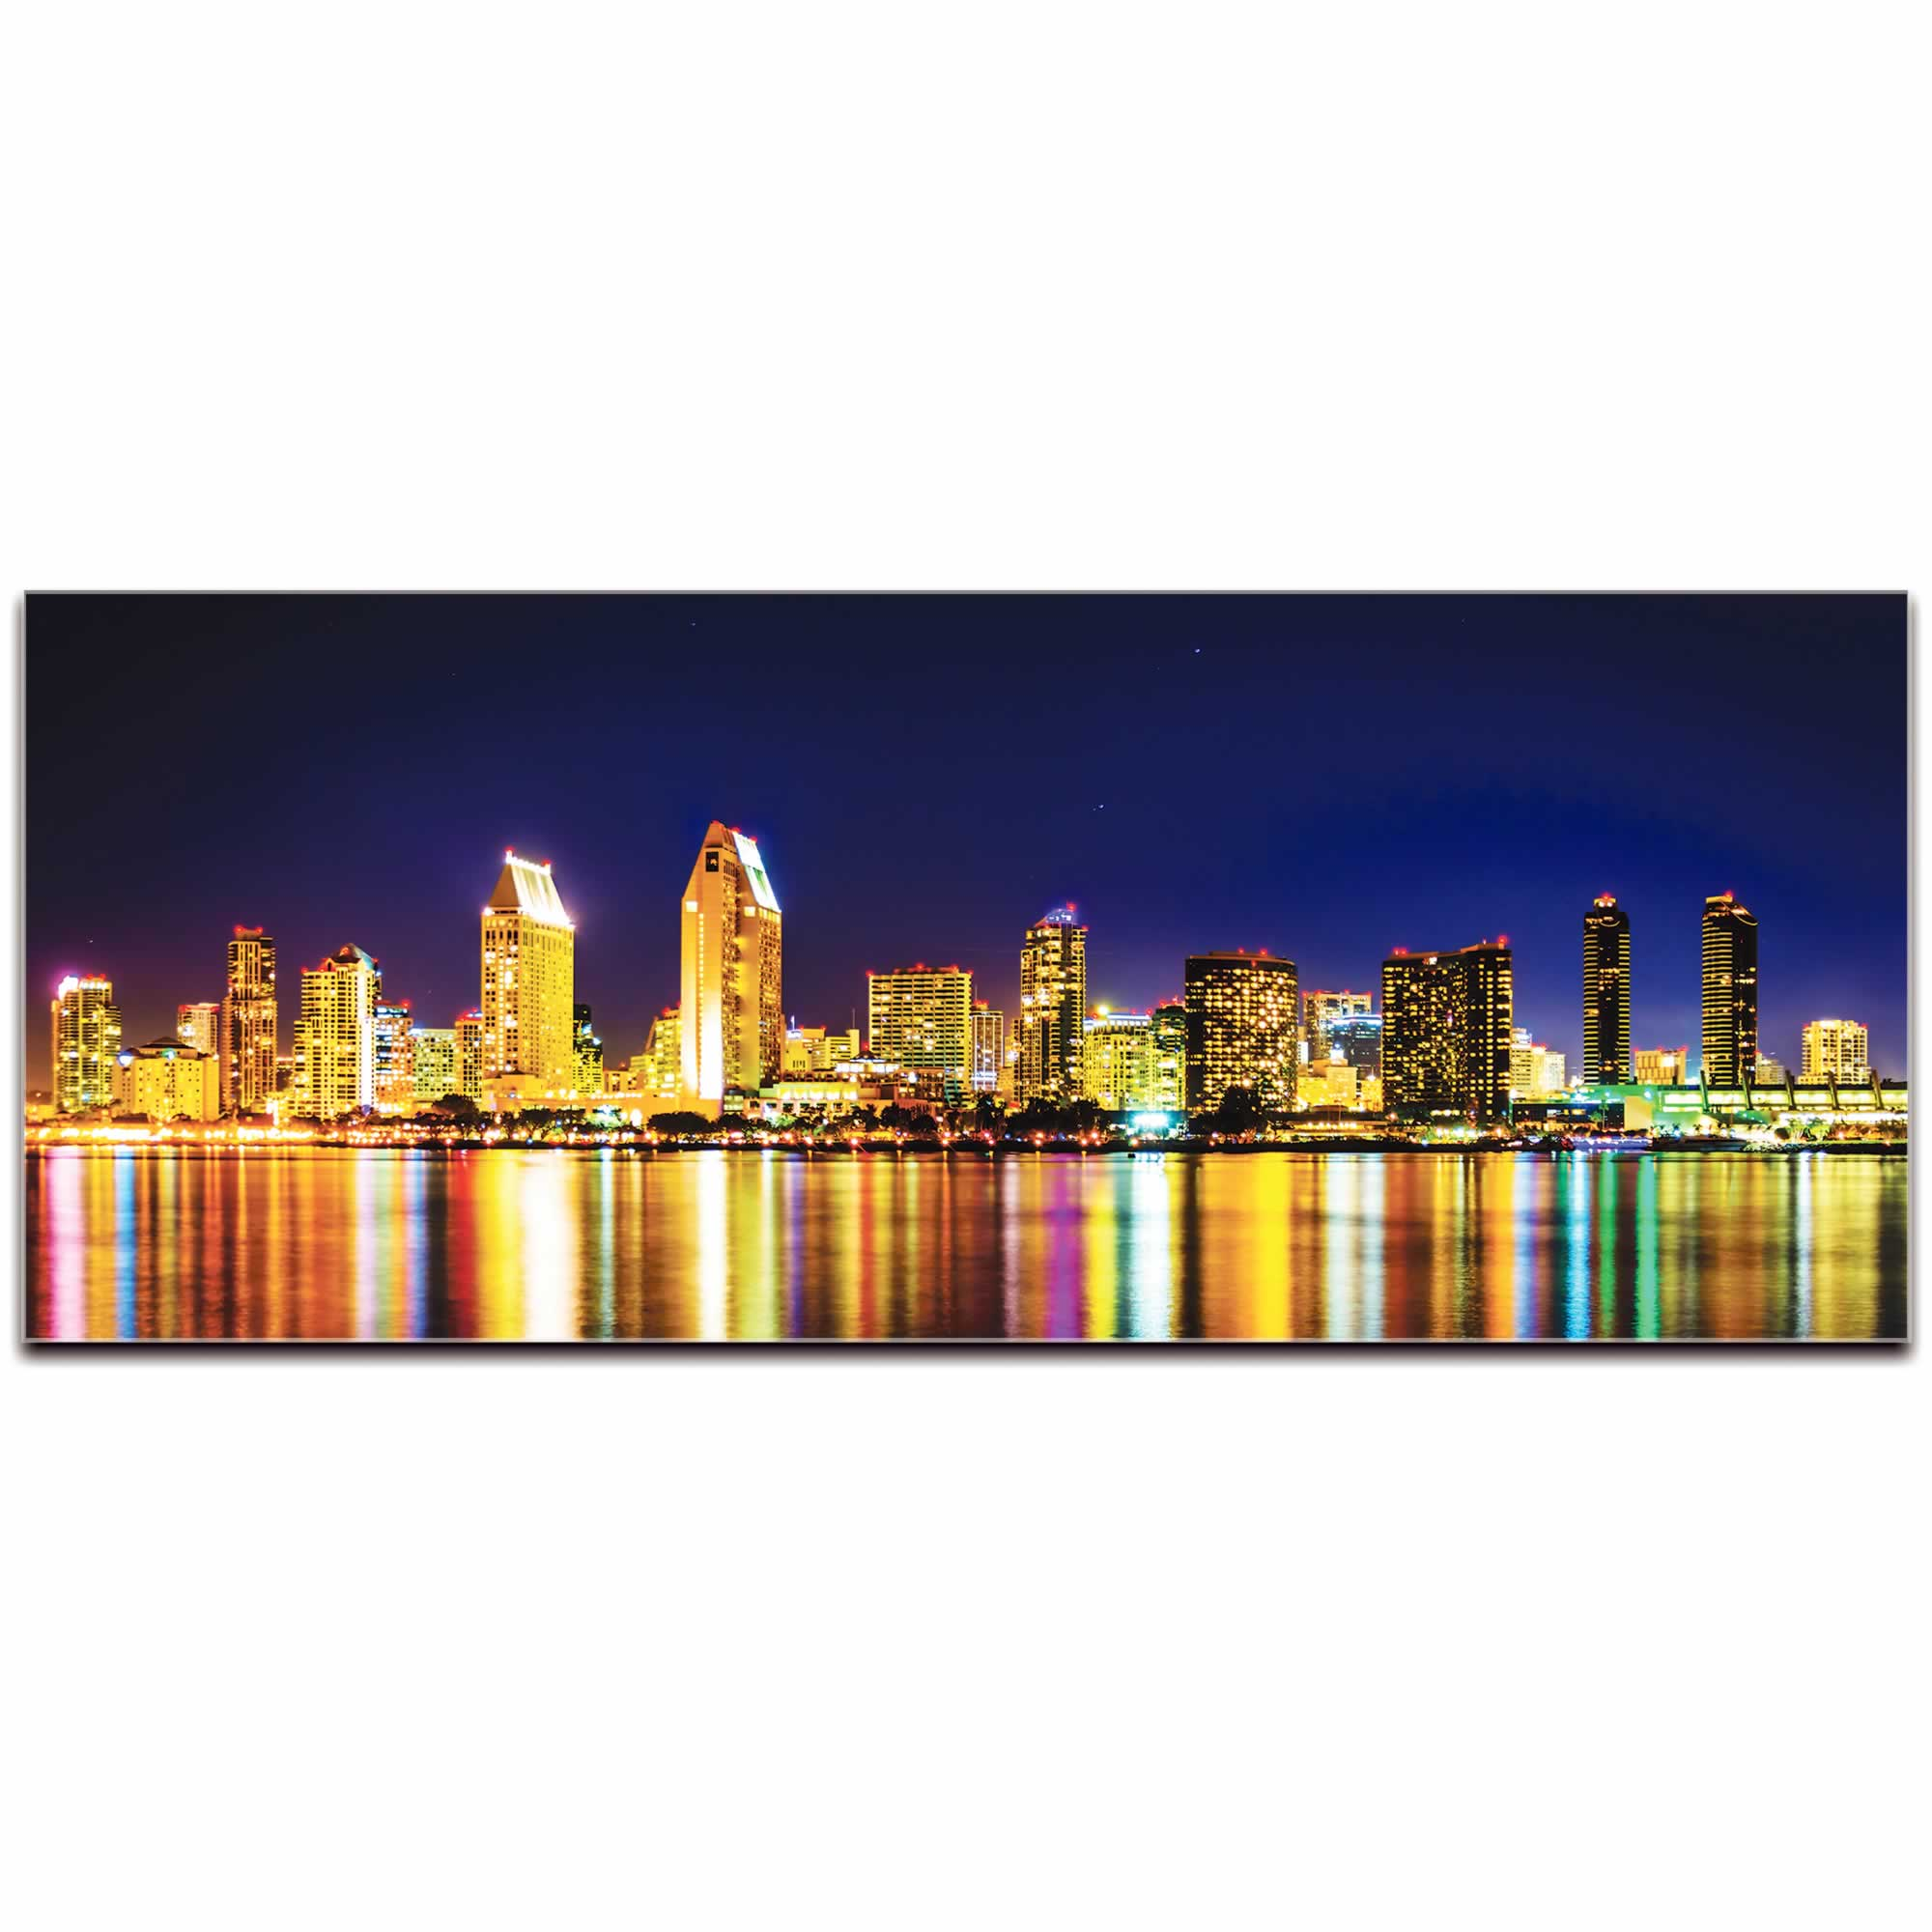 San Diego City Skyline At Night - Urban Modern Art, Designer Home Decor, Cityscape Wall Artwork, Trendy Contemporary Art